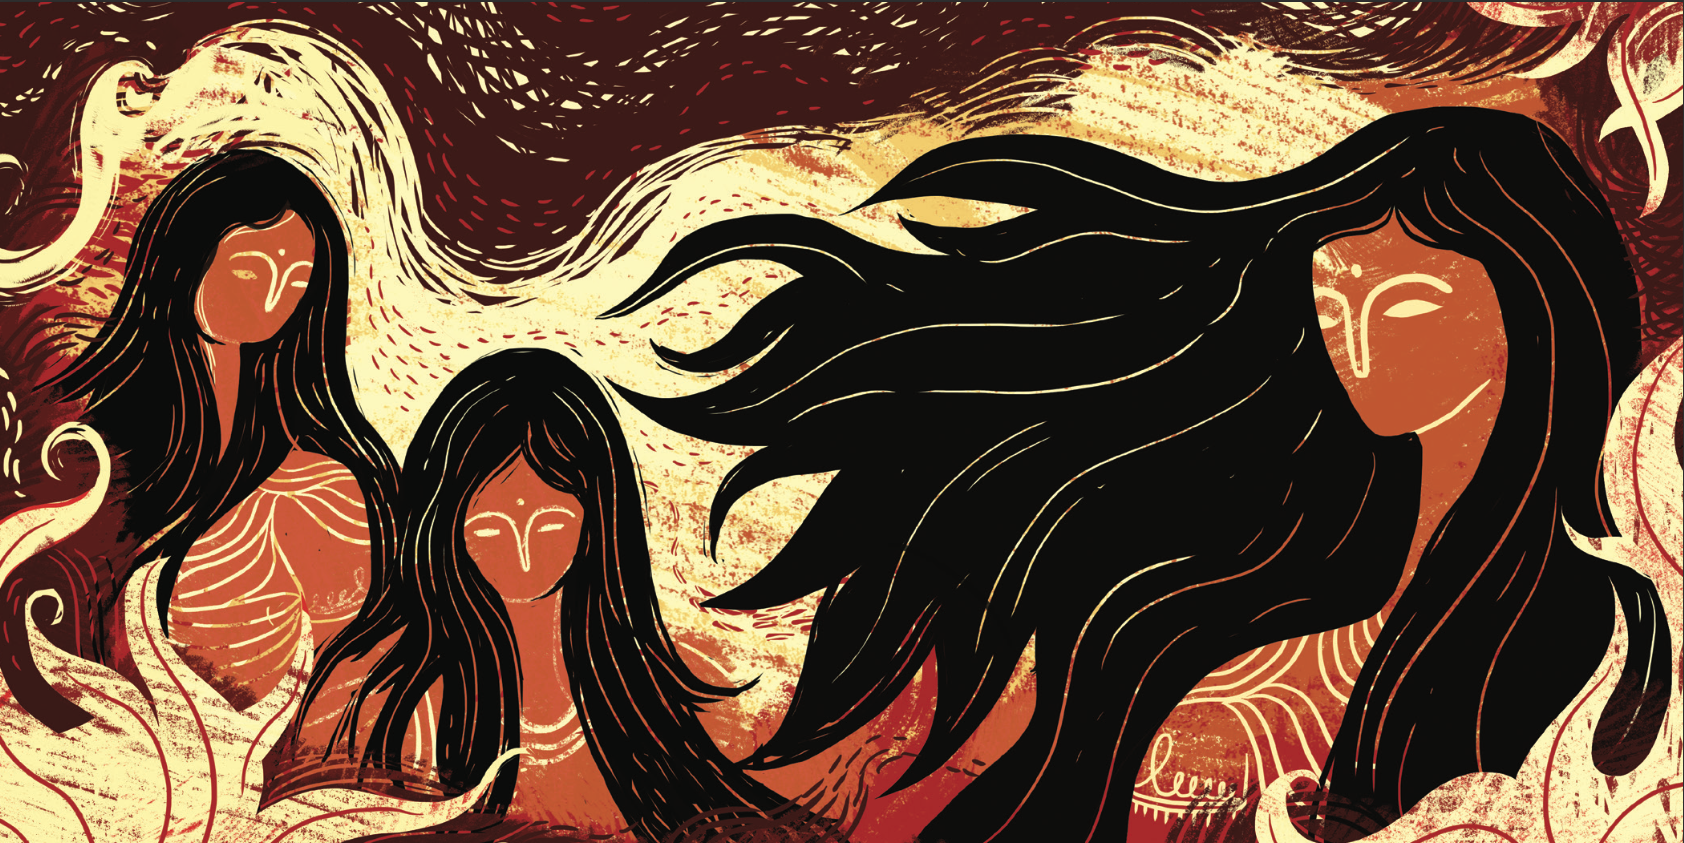 Ramayana 18 - Sita steps into the flames.png